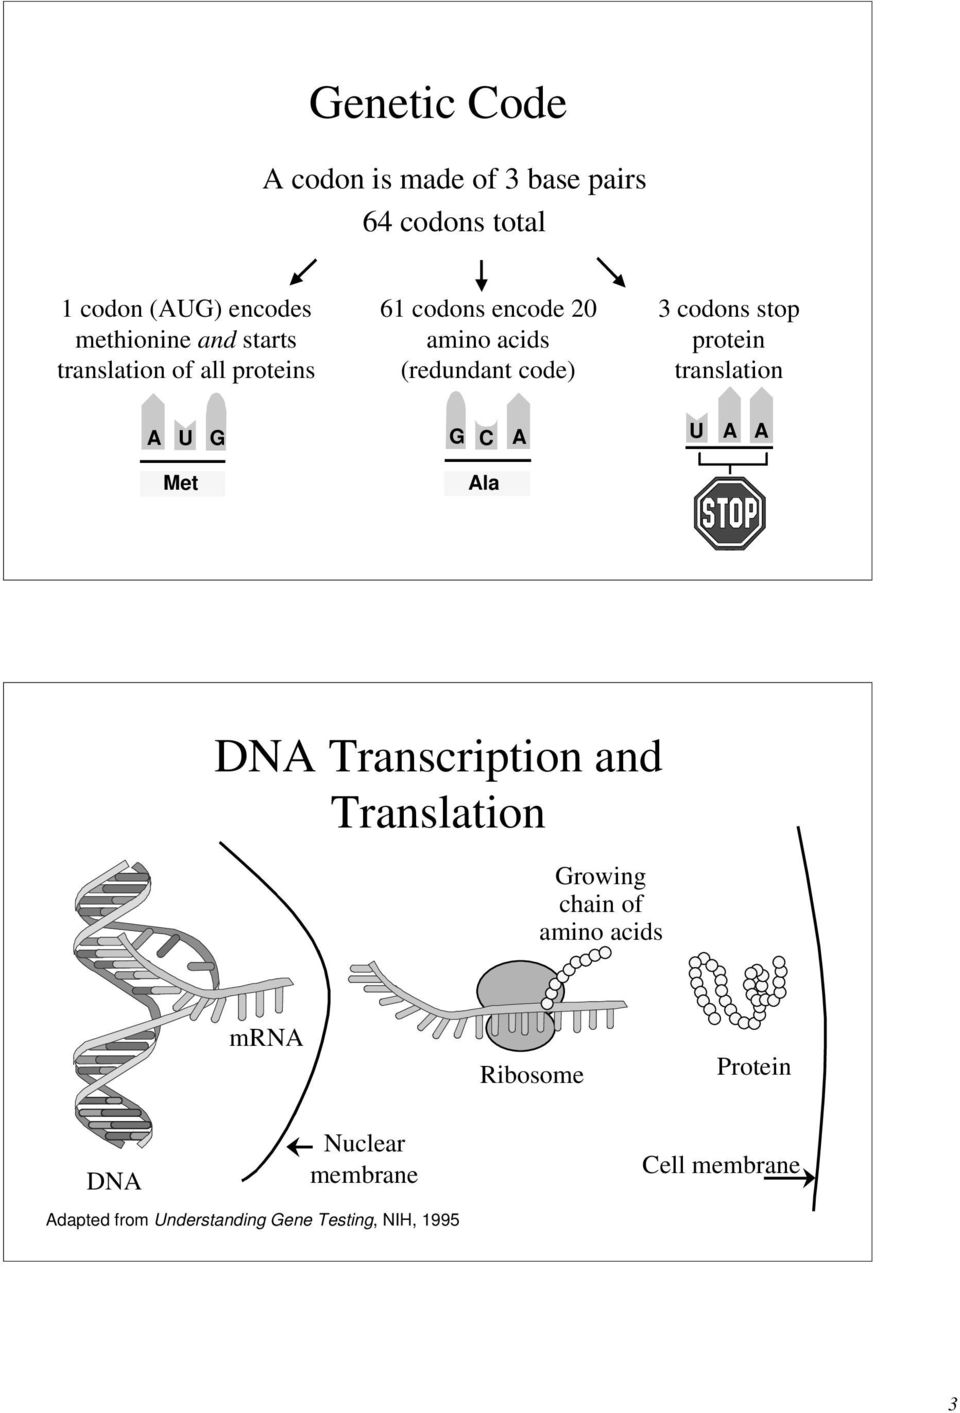 protein translation A U G G A U A A Met Ala DNA Transcription and Translation Growing chain of amino